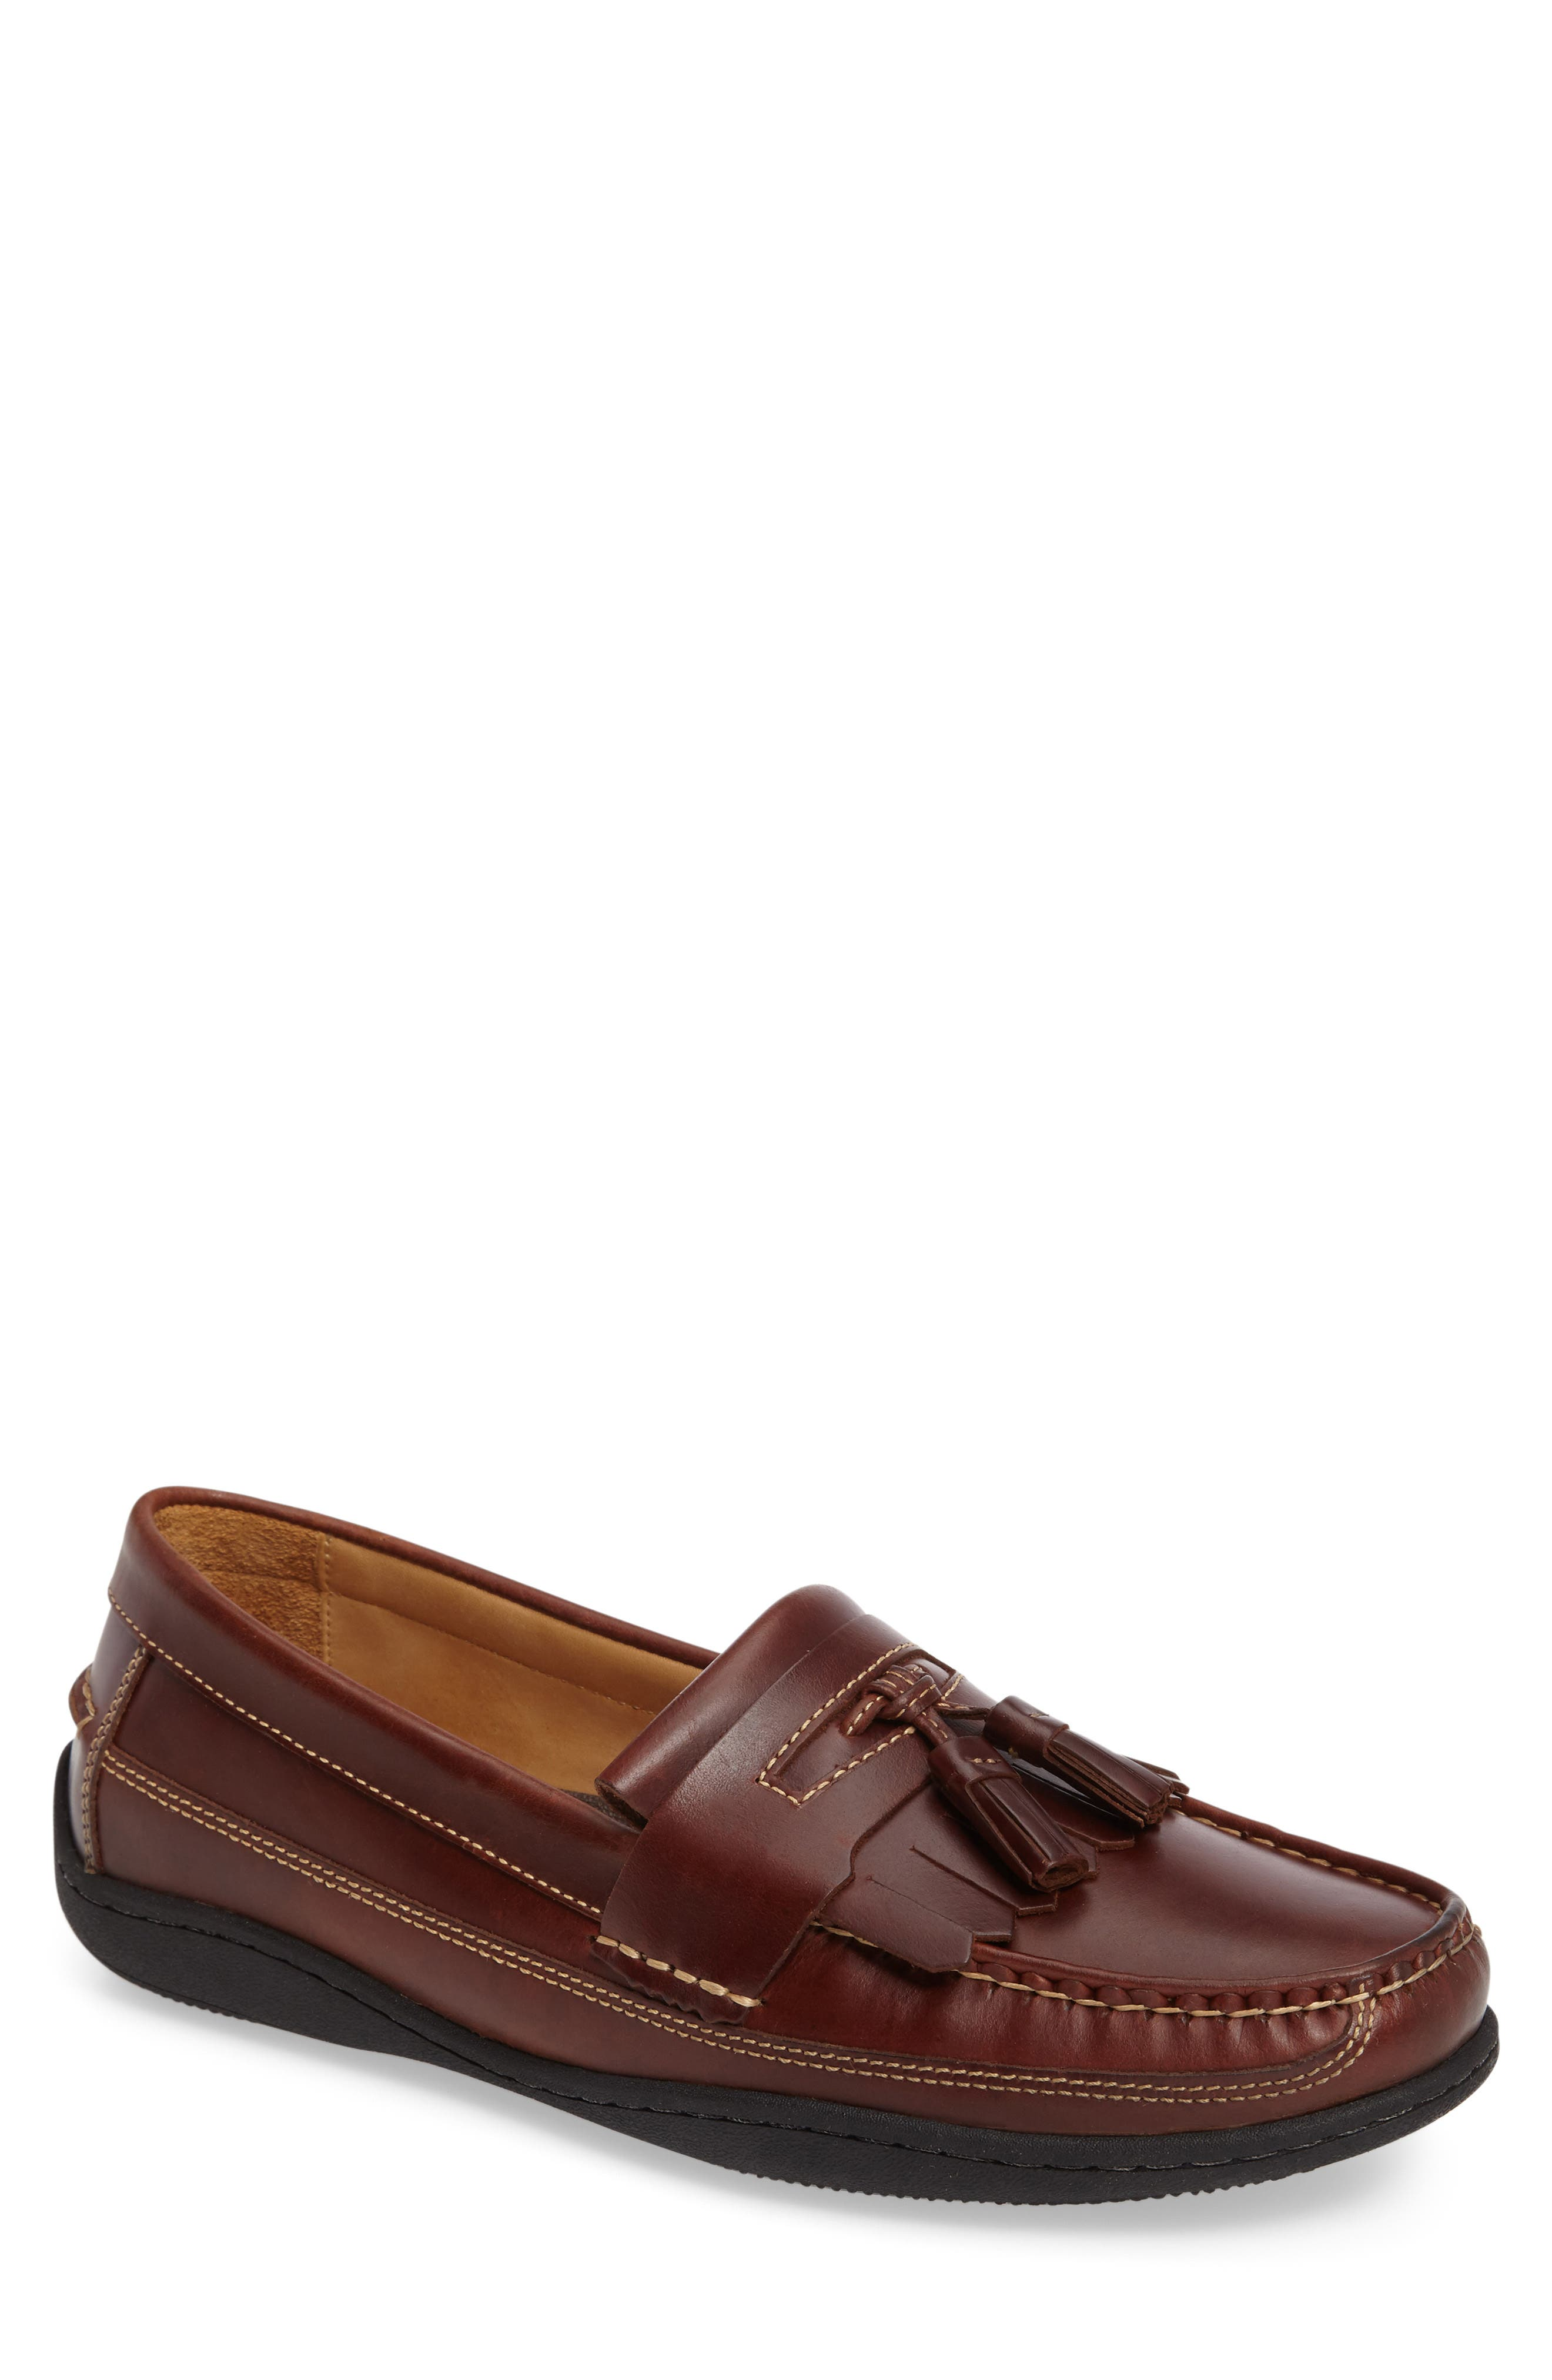 Fowler Kiltie Tassel Loafer,                         Main,                         color, 206